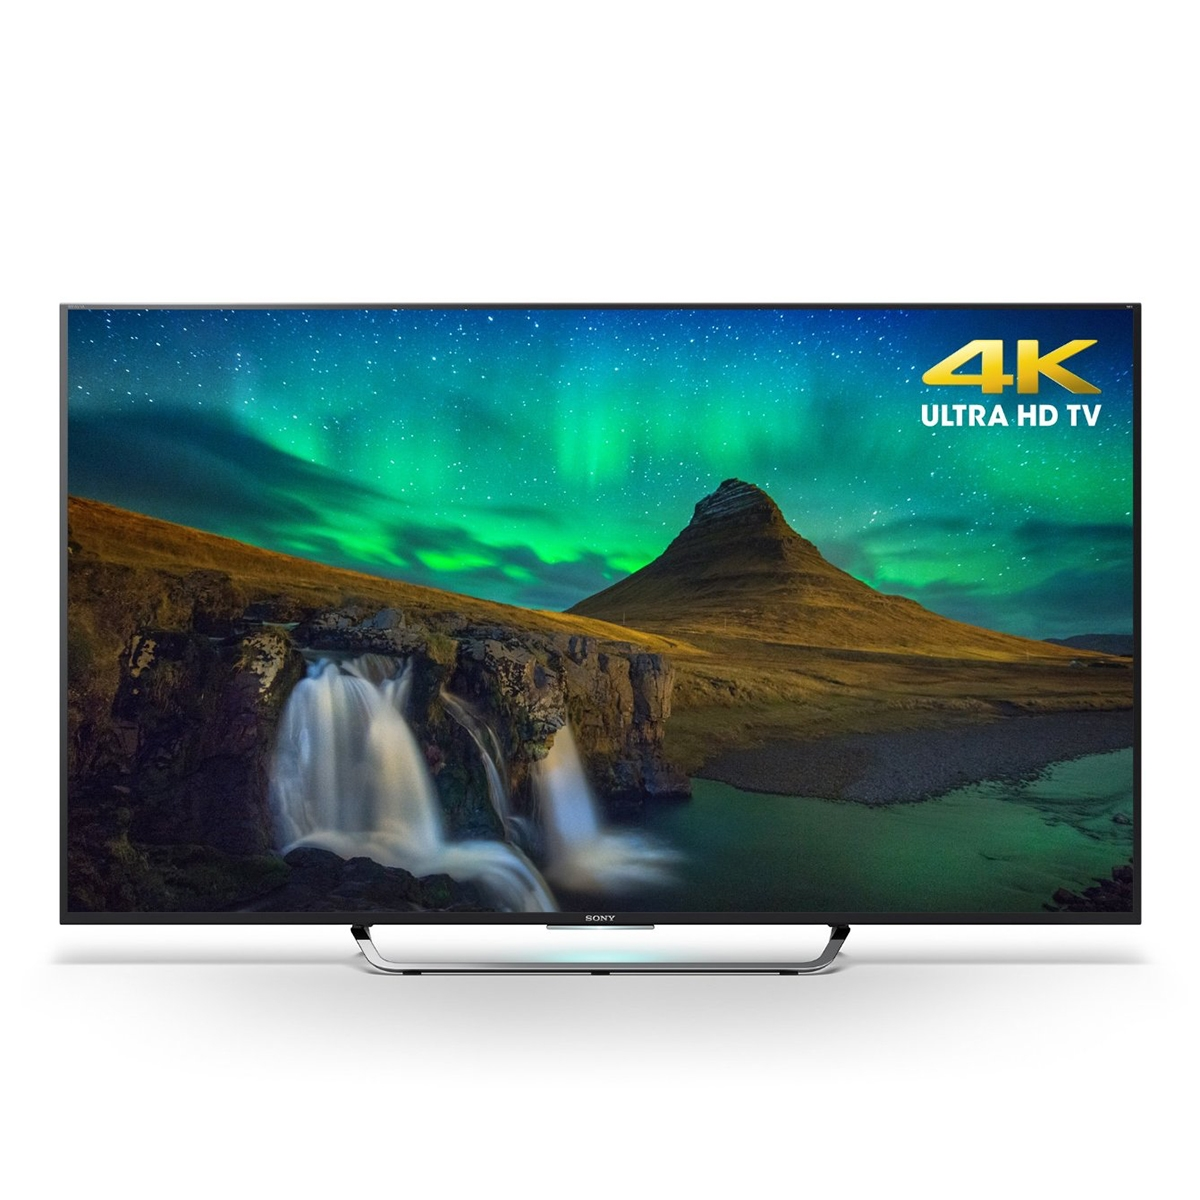 SONY 65INCH CLASS UHD 4K LED SMART HDTV - XBR65X850C- RESIDENTIAL USA VERSION -SONY ORIGINAL PANEL - FULL ONE YEAR MANUFACTURERS WARRANTY!